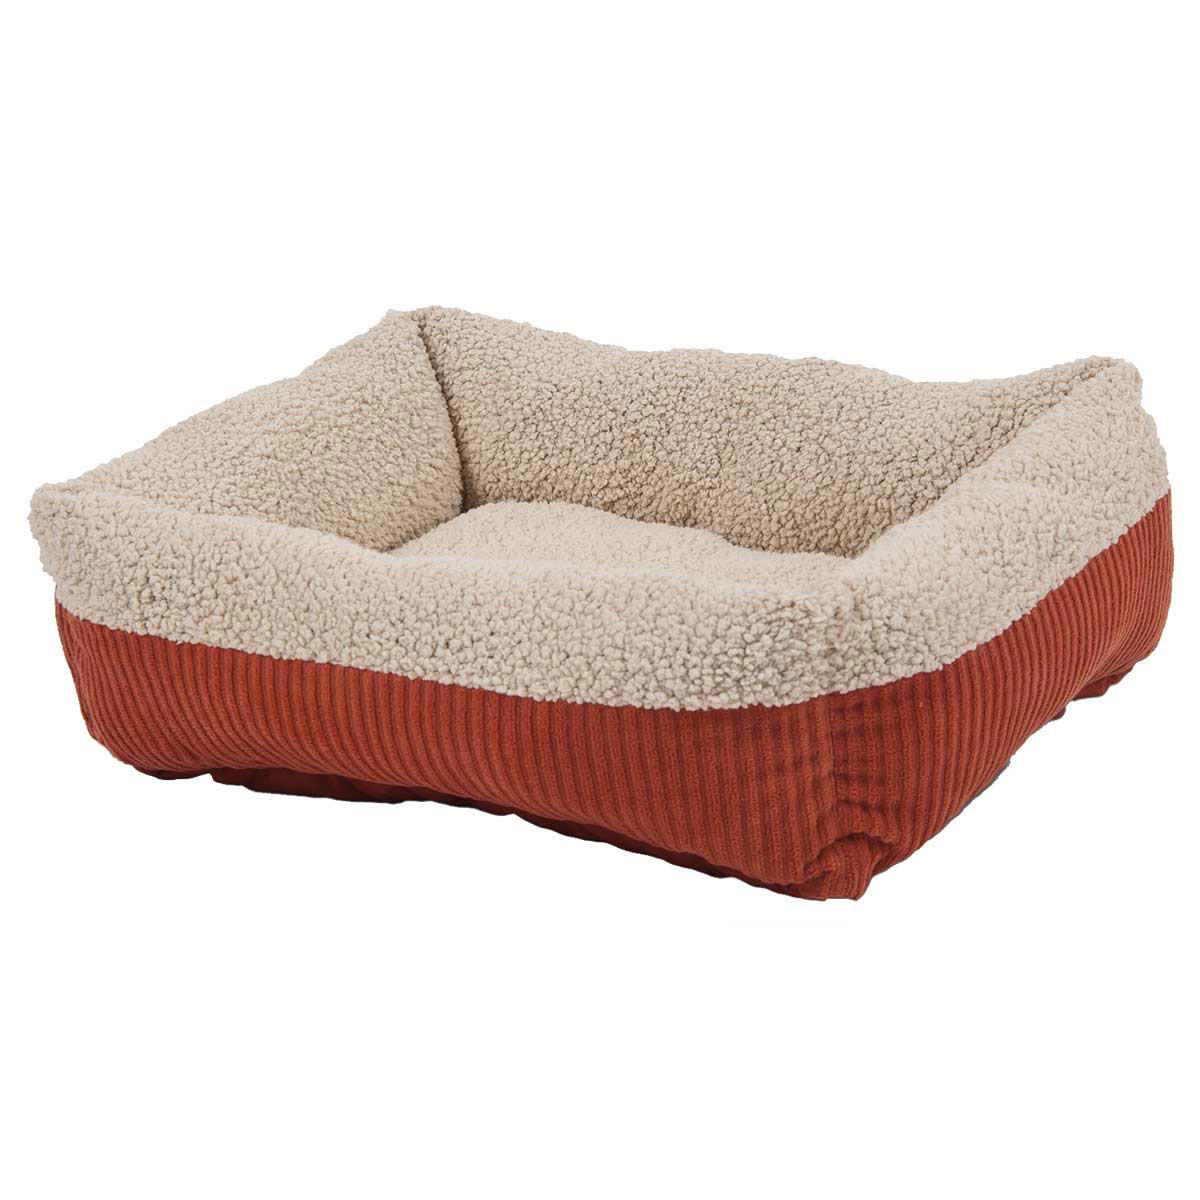 Aspen Pet Self-Warming Bed Rectangular Lounger - 24 inches by 20 inches